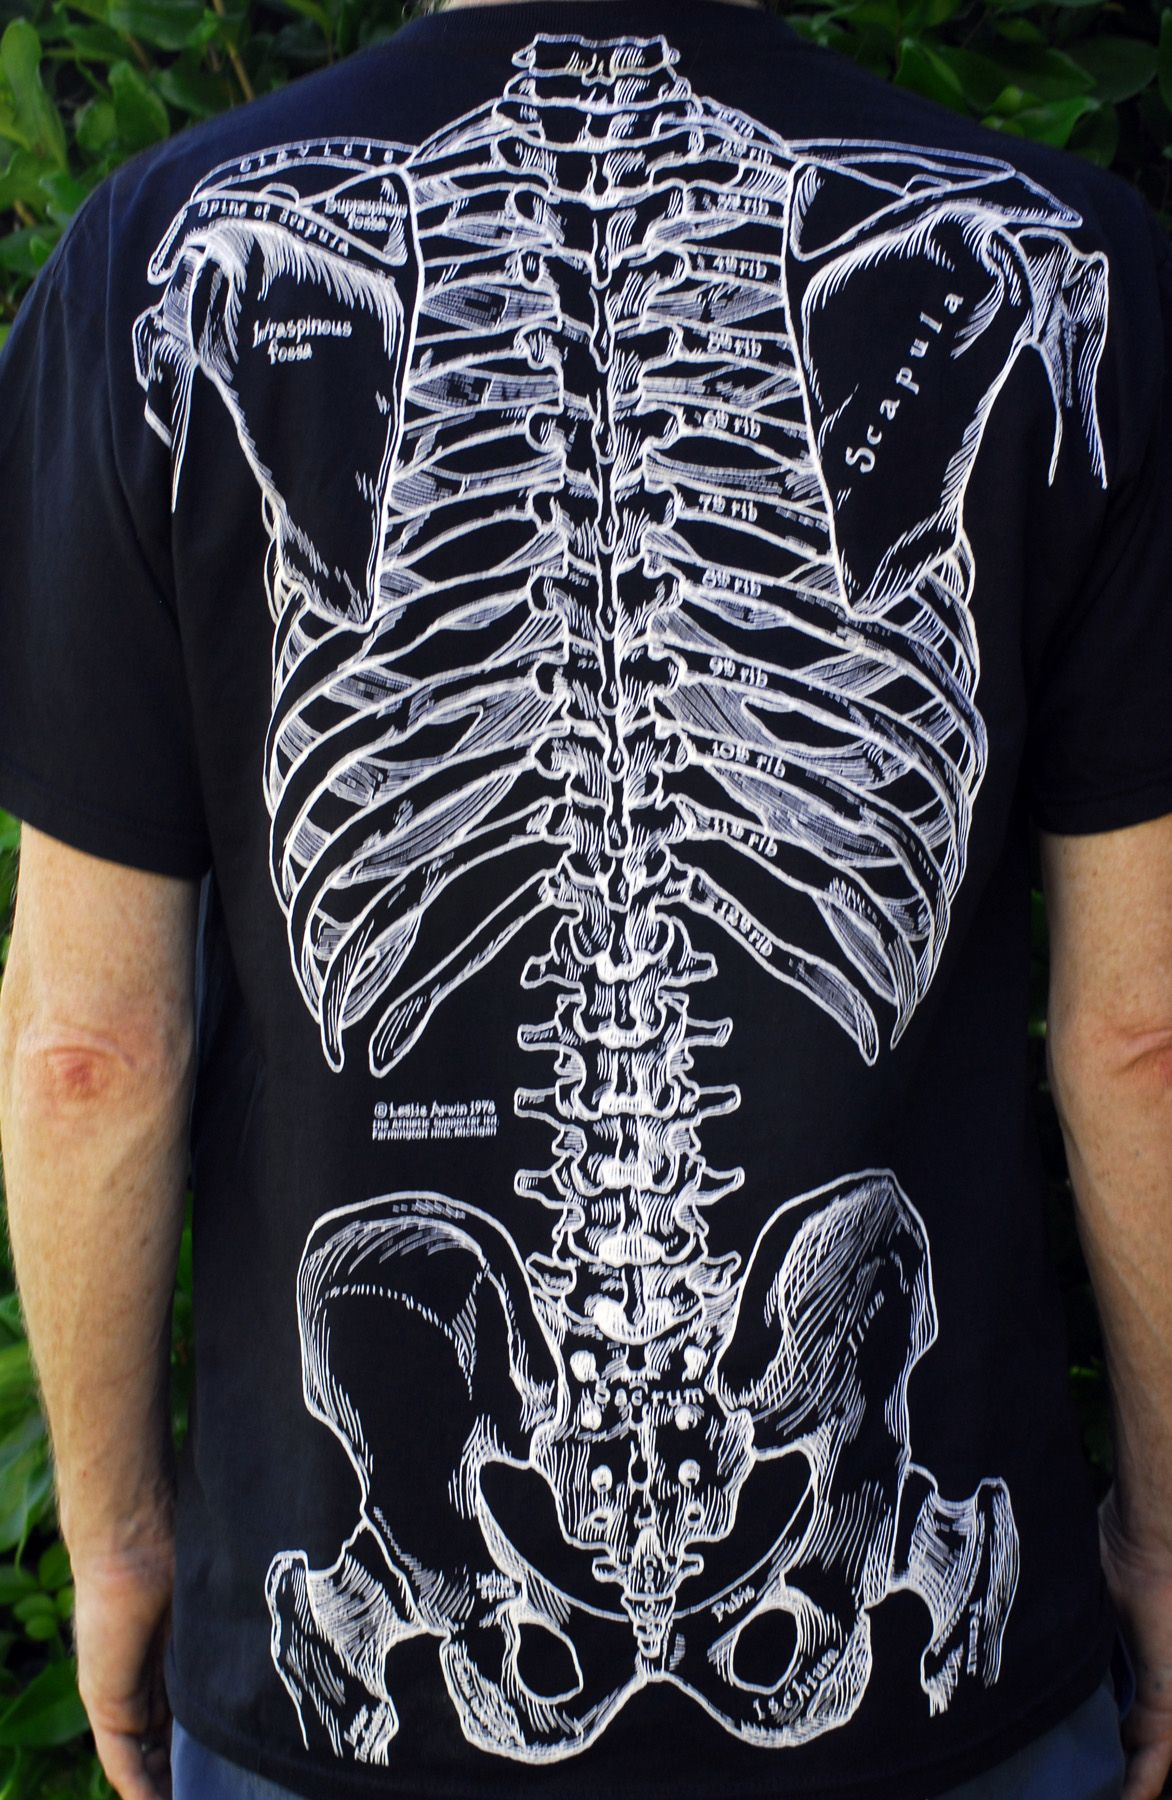 anatomy t-shirt muscles - Google Search  6cac57a355d